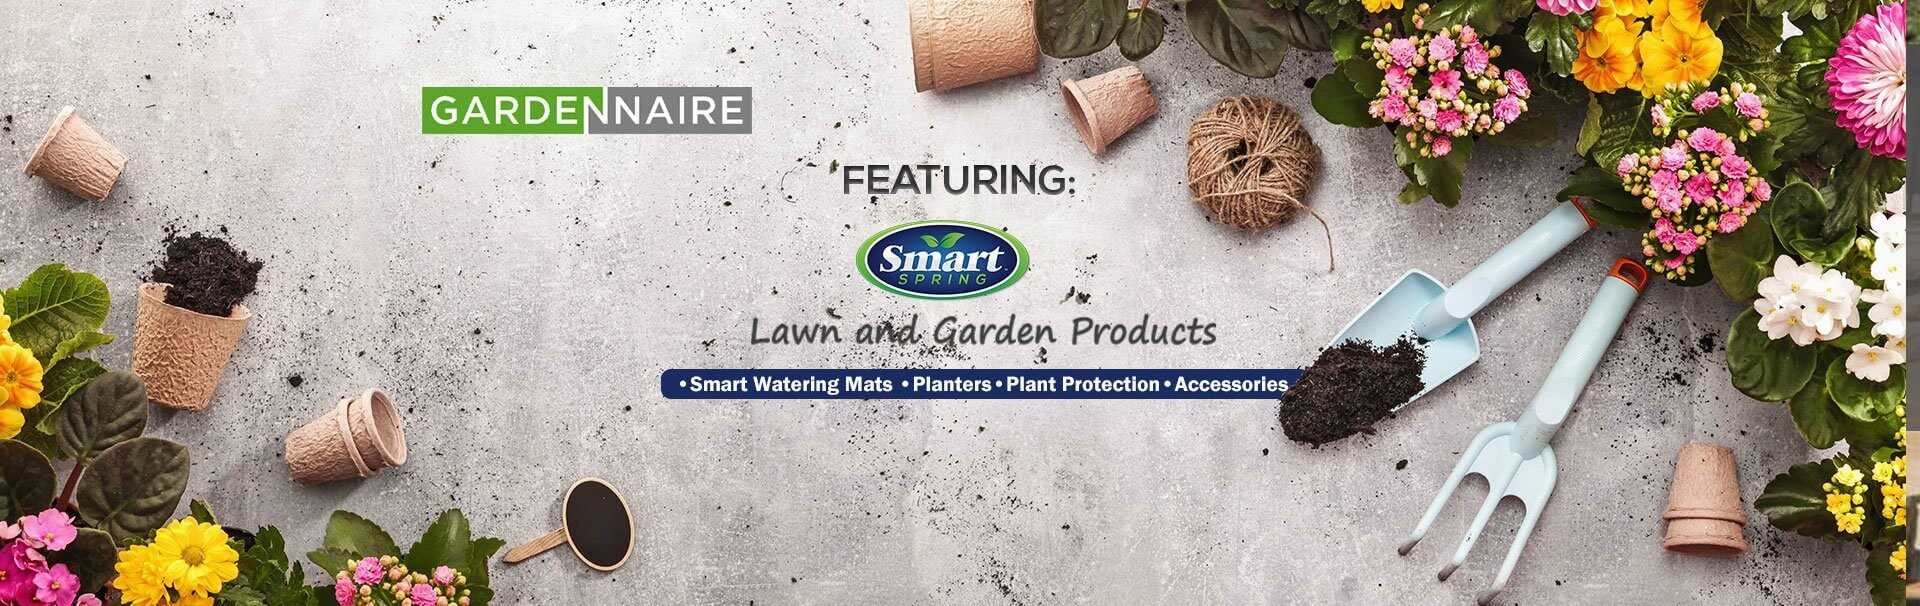 Smart Spring Lawn and Garden Products Austin Texas